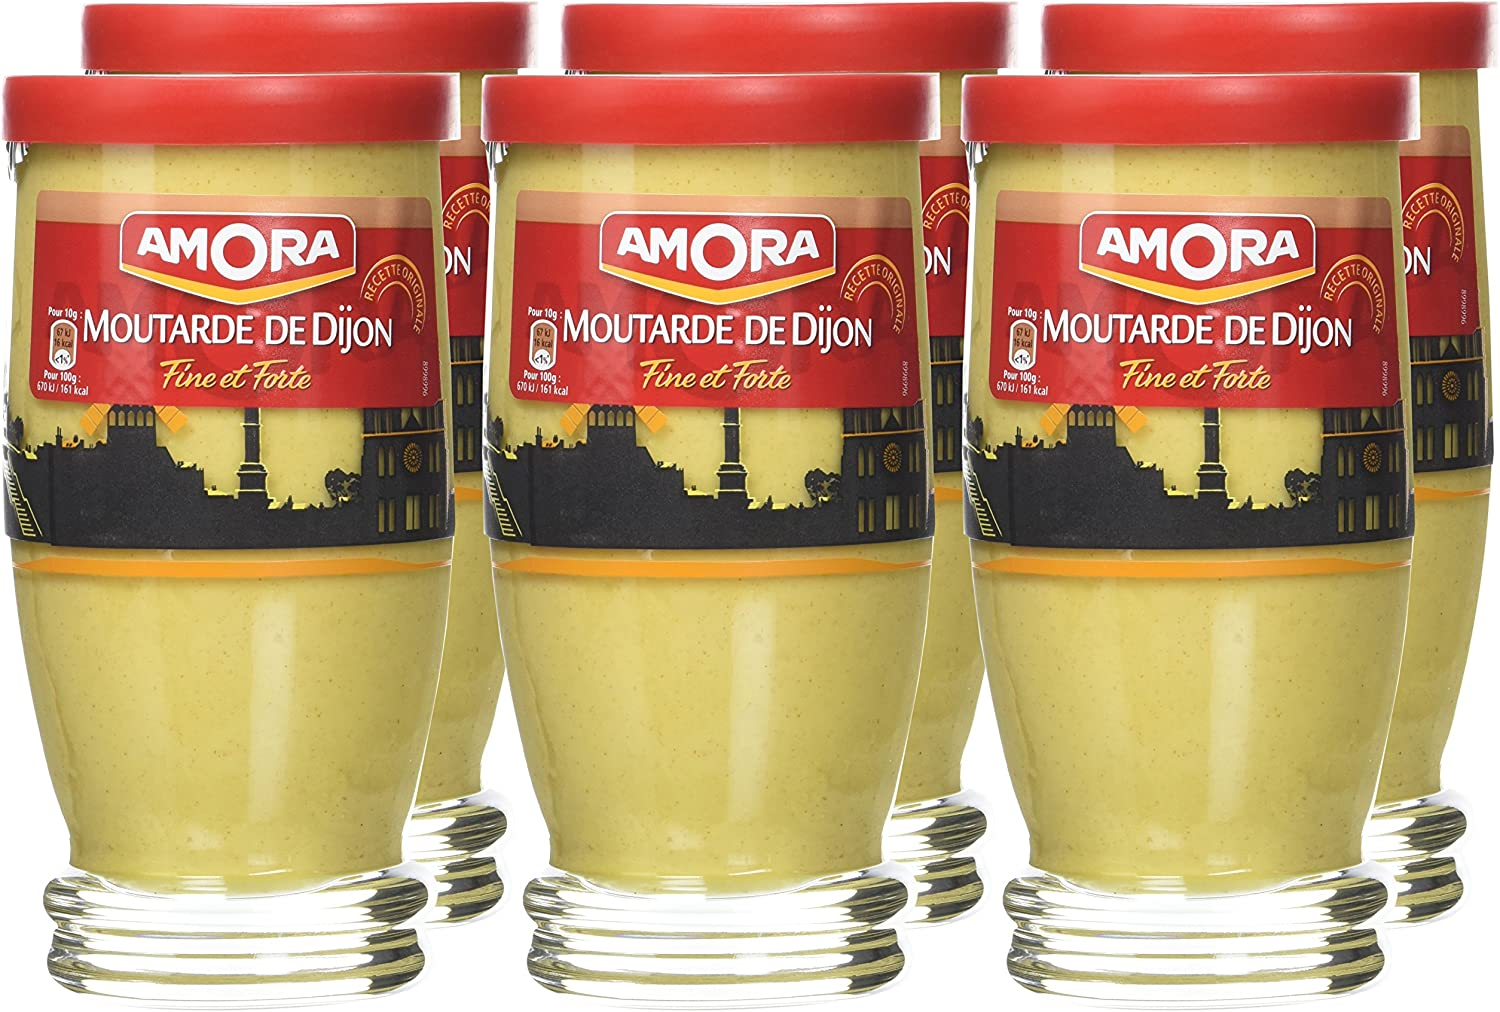 Amora Verre TV Moutarde Forte 300 g - Lot de 6: Amazon.fr: Epicerie